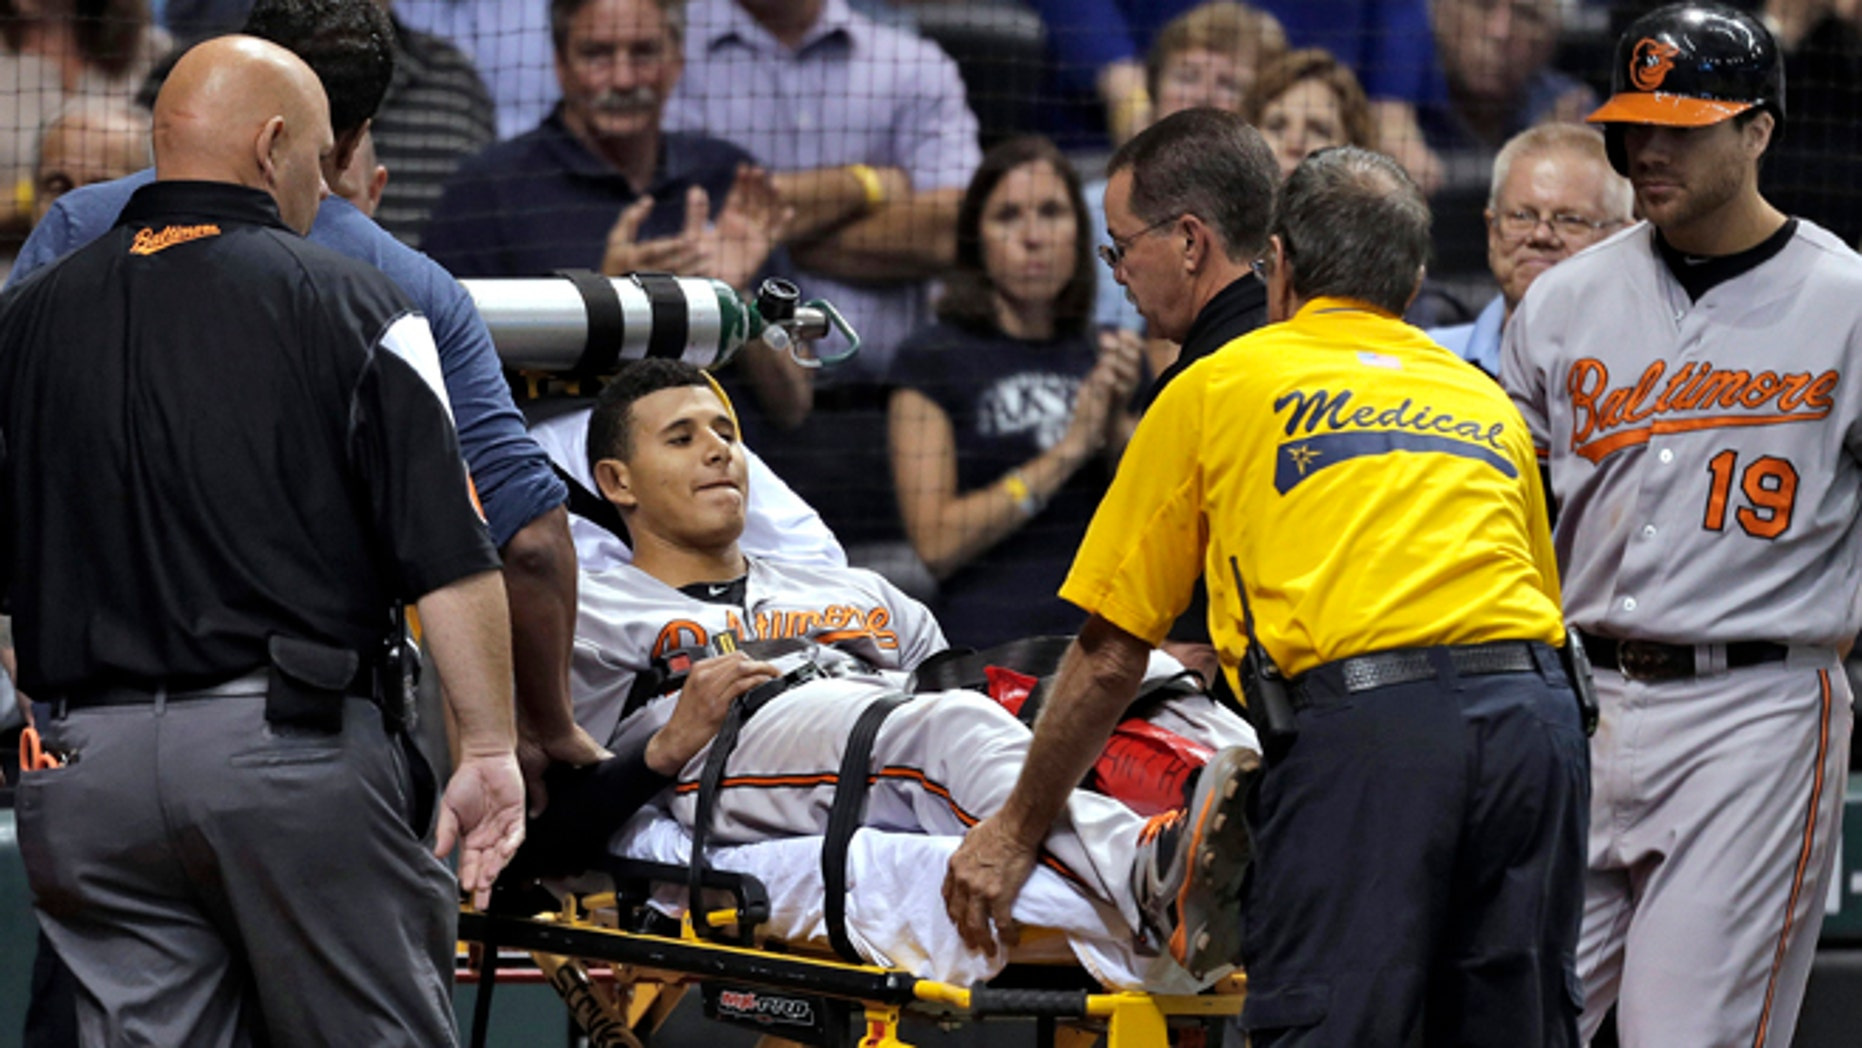 Baltimore Orioles' Manny Machado is taken off the field on a stretcher after injuring his left leg while running to first base on a seventh-inning single off Tampa Bay Rays relief pitcher Jake McGee during a baseball game Monday, Sept. 23, 2013, in St. Petersburg, Fla. (AP Photo/Chris O'Meara)